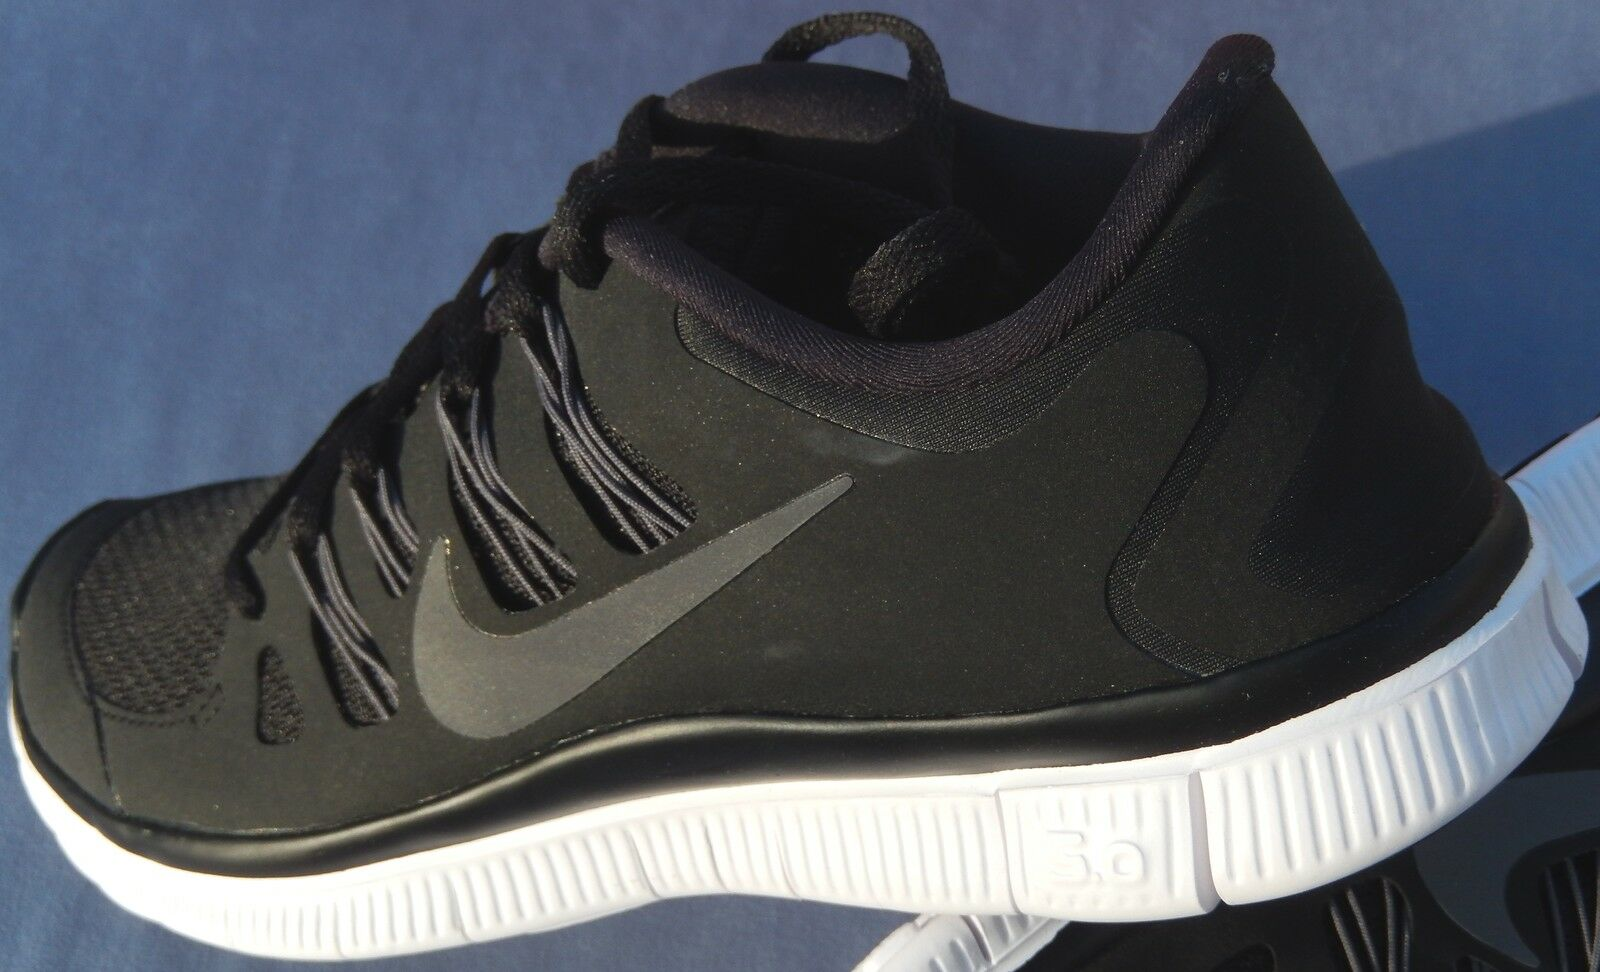 newest 8a4b9 56beb New Nike Womens Free 5.0 + Size 5.5 Black Gray Swoosh 580591-002 1 of 7 ...